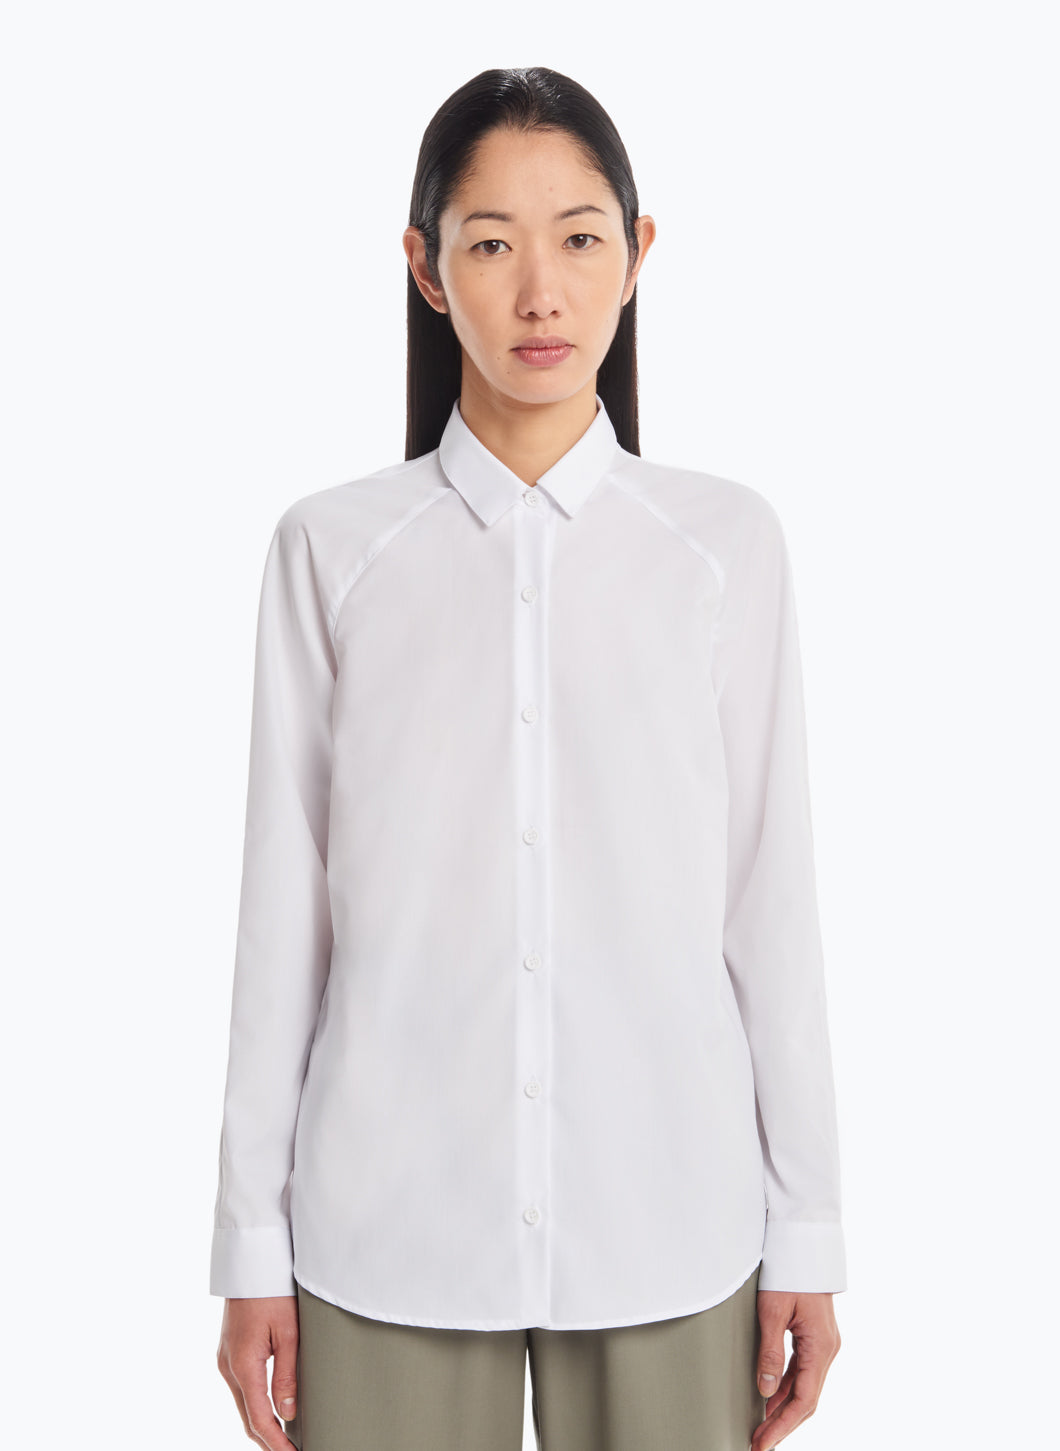 Raglan Sleeve Shirt in White Poplin